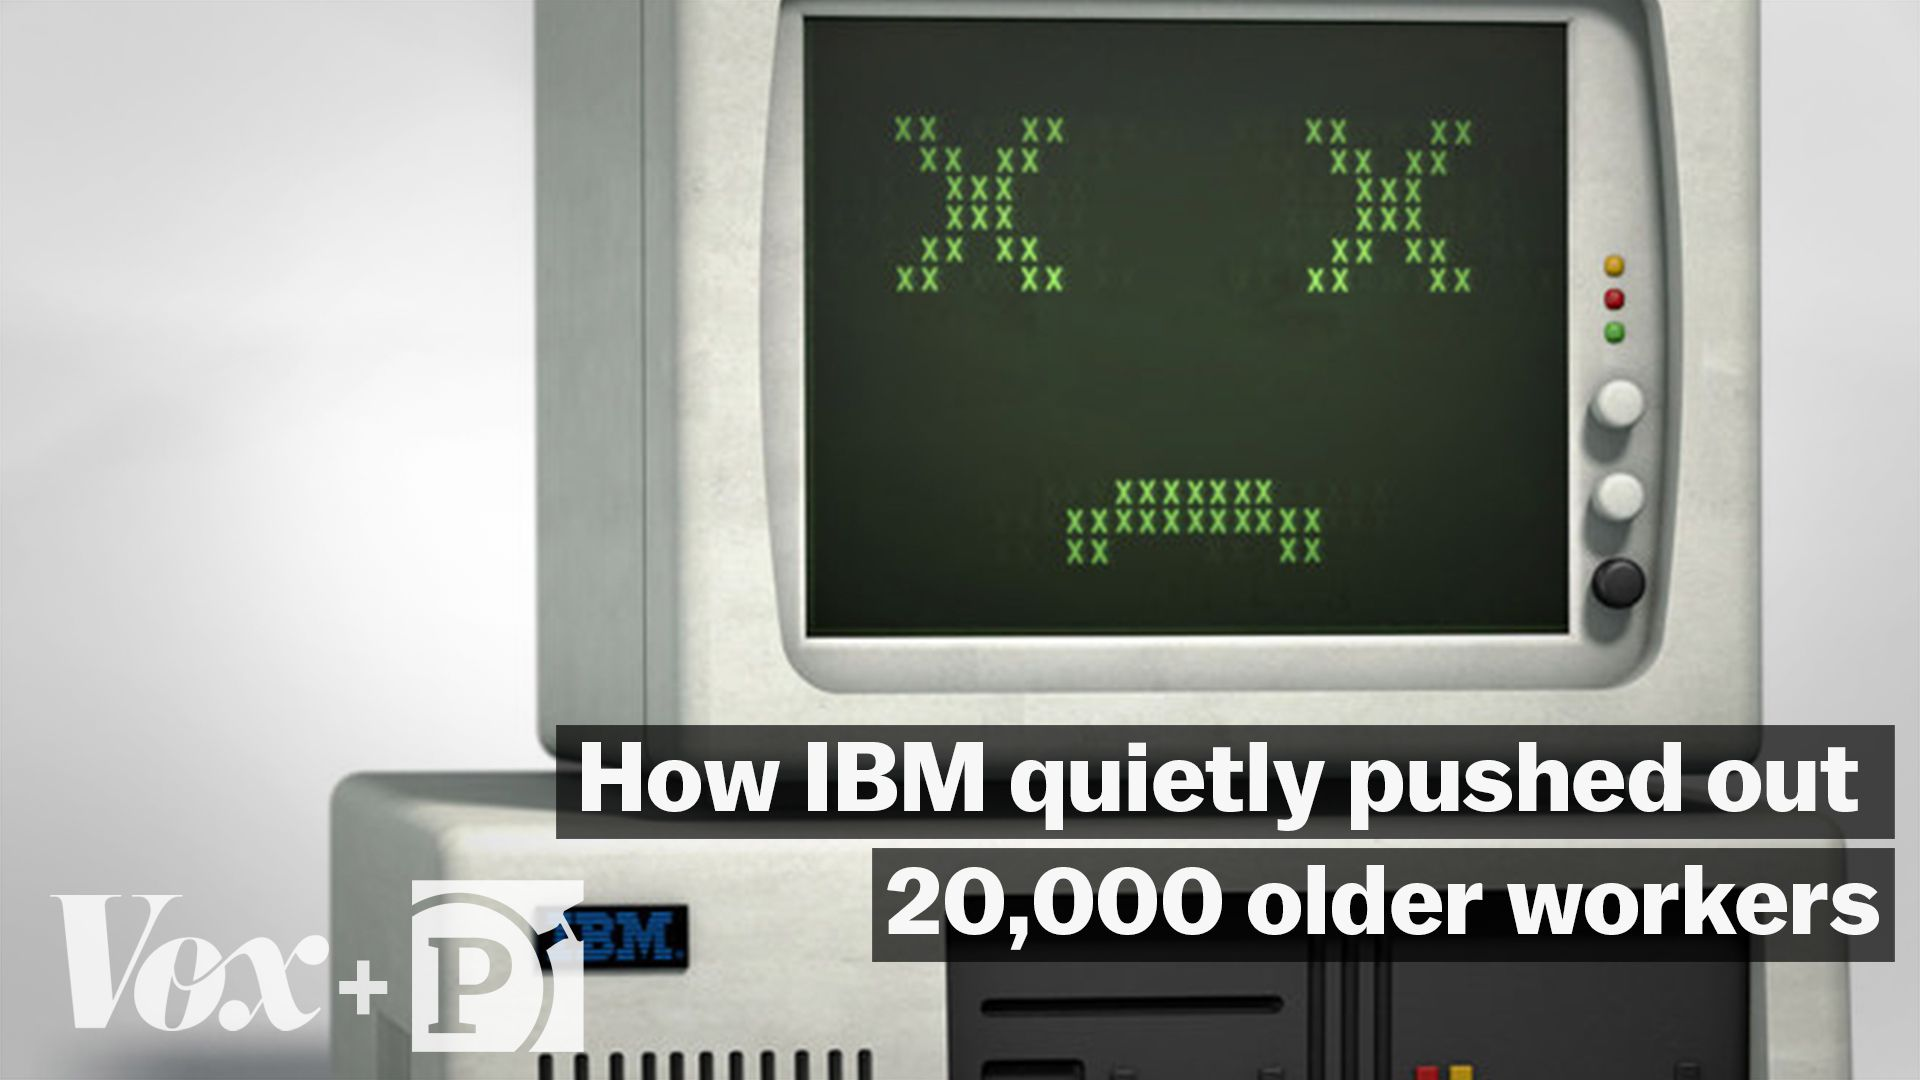 How IBM quietly pushed out 20,000 aging workers - Vox